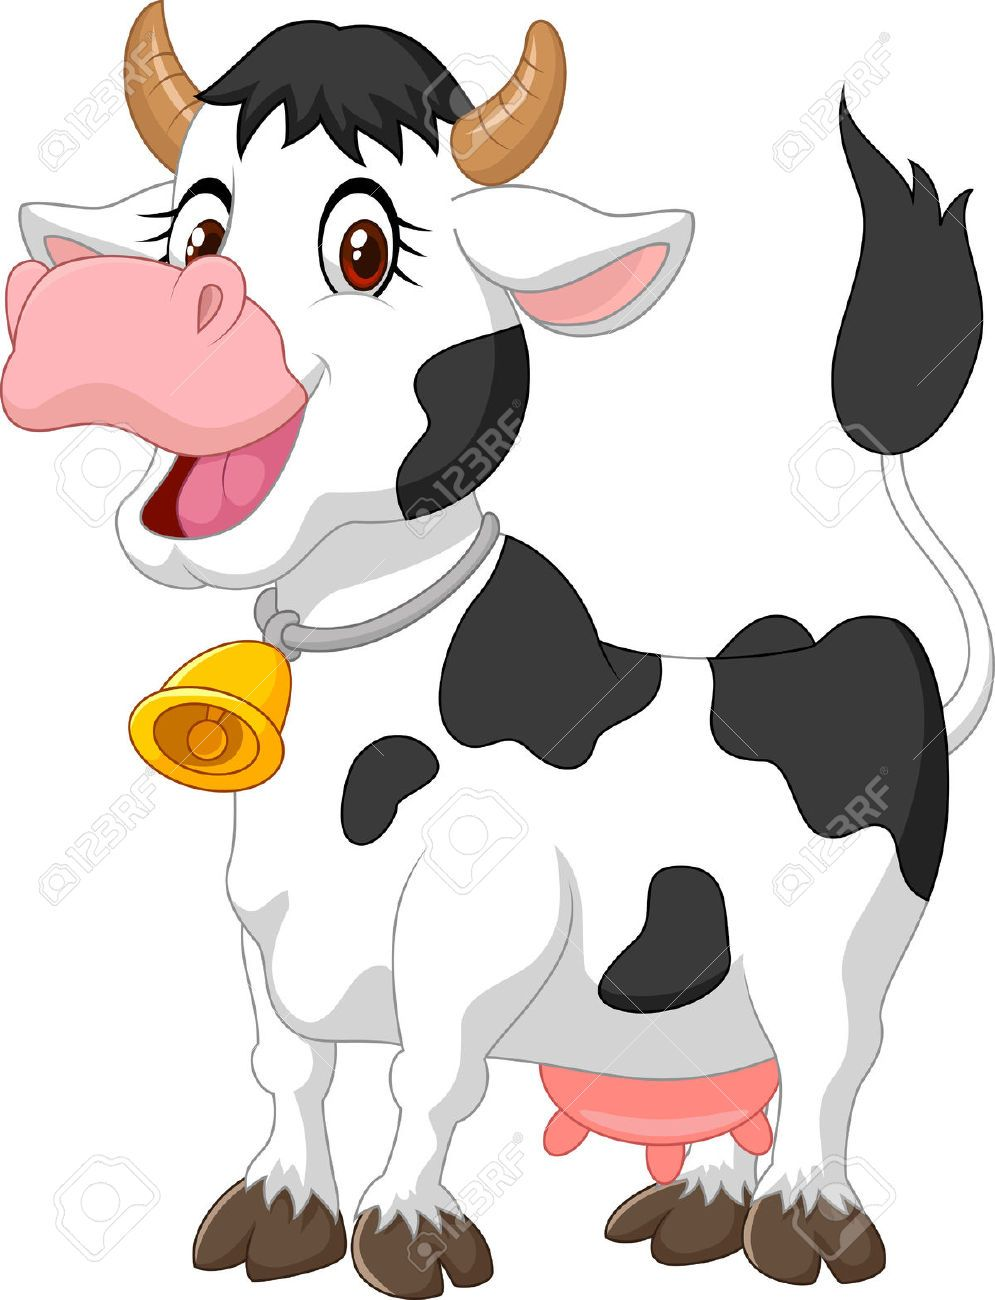 101 dalmatian cows clipart vector freeuse download Pin by JaDonn Shawver on grandkidos | Cartoon cow, Cow drawing ... vector freeuse download